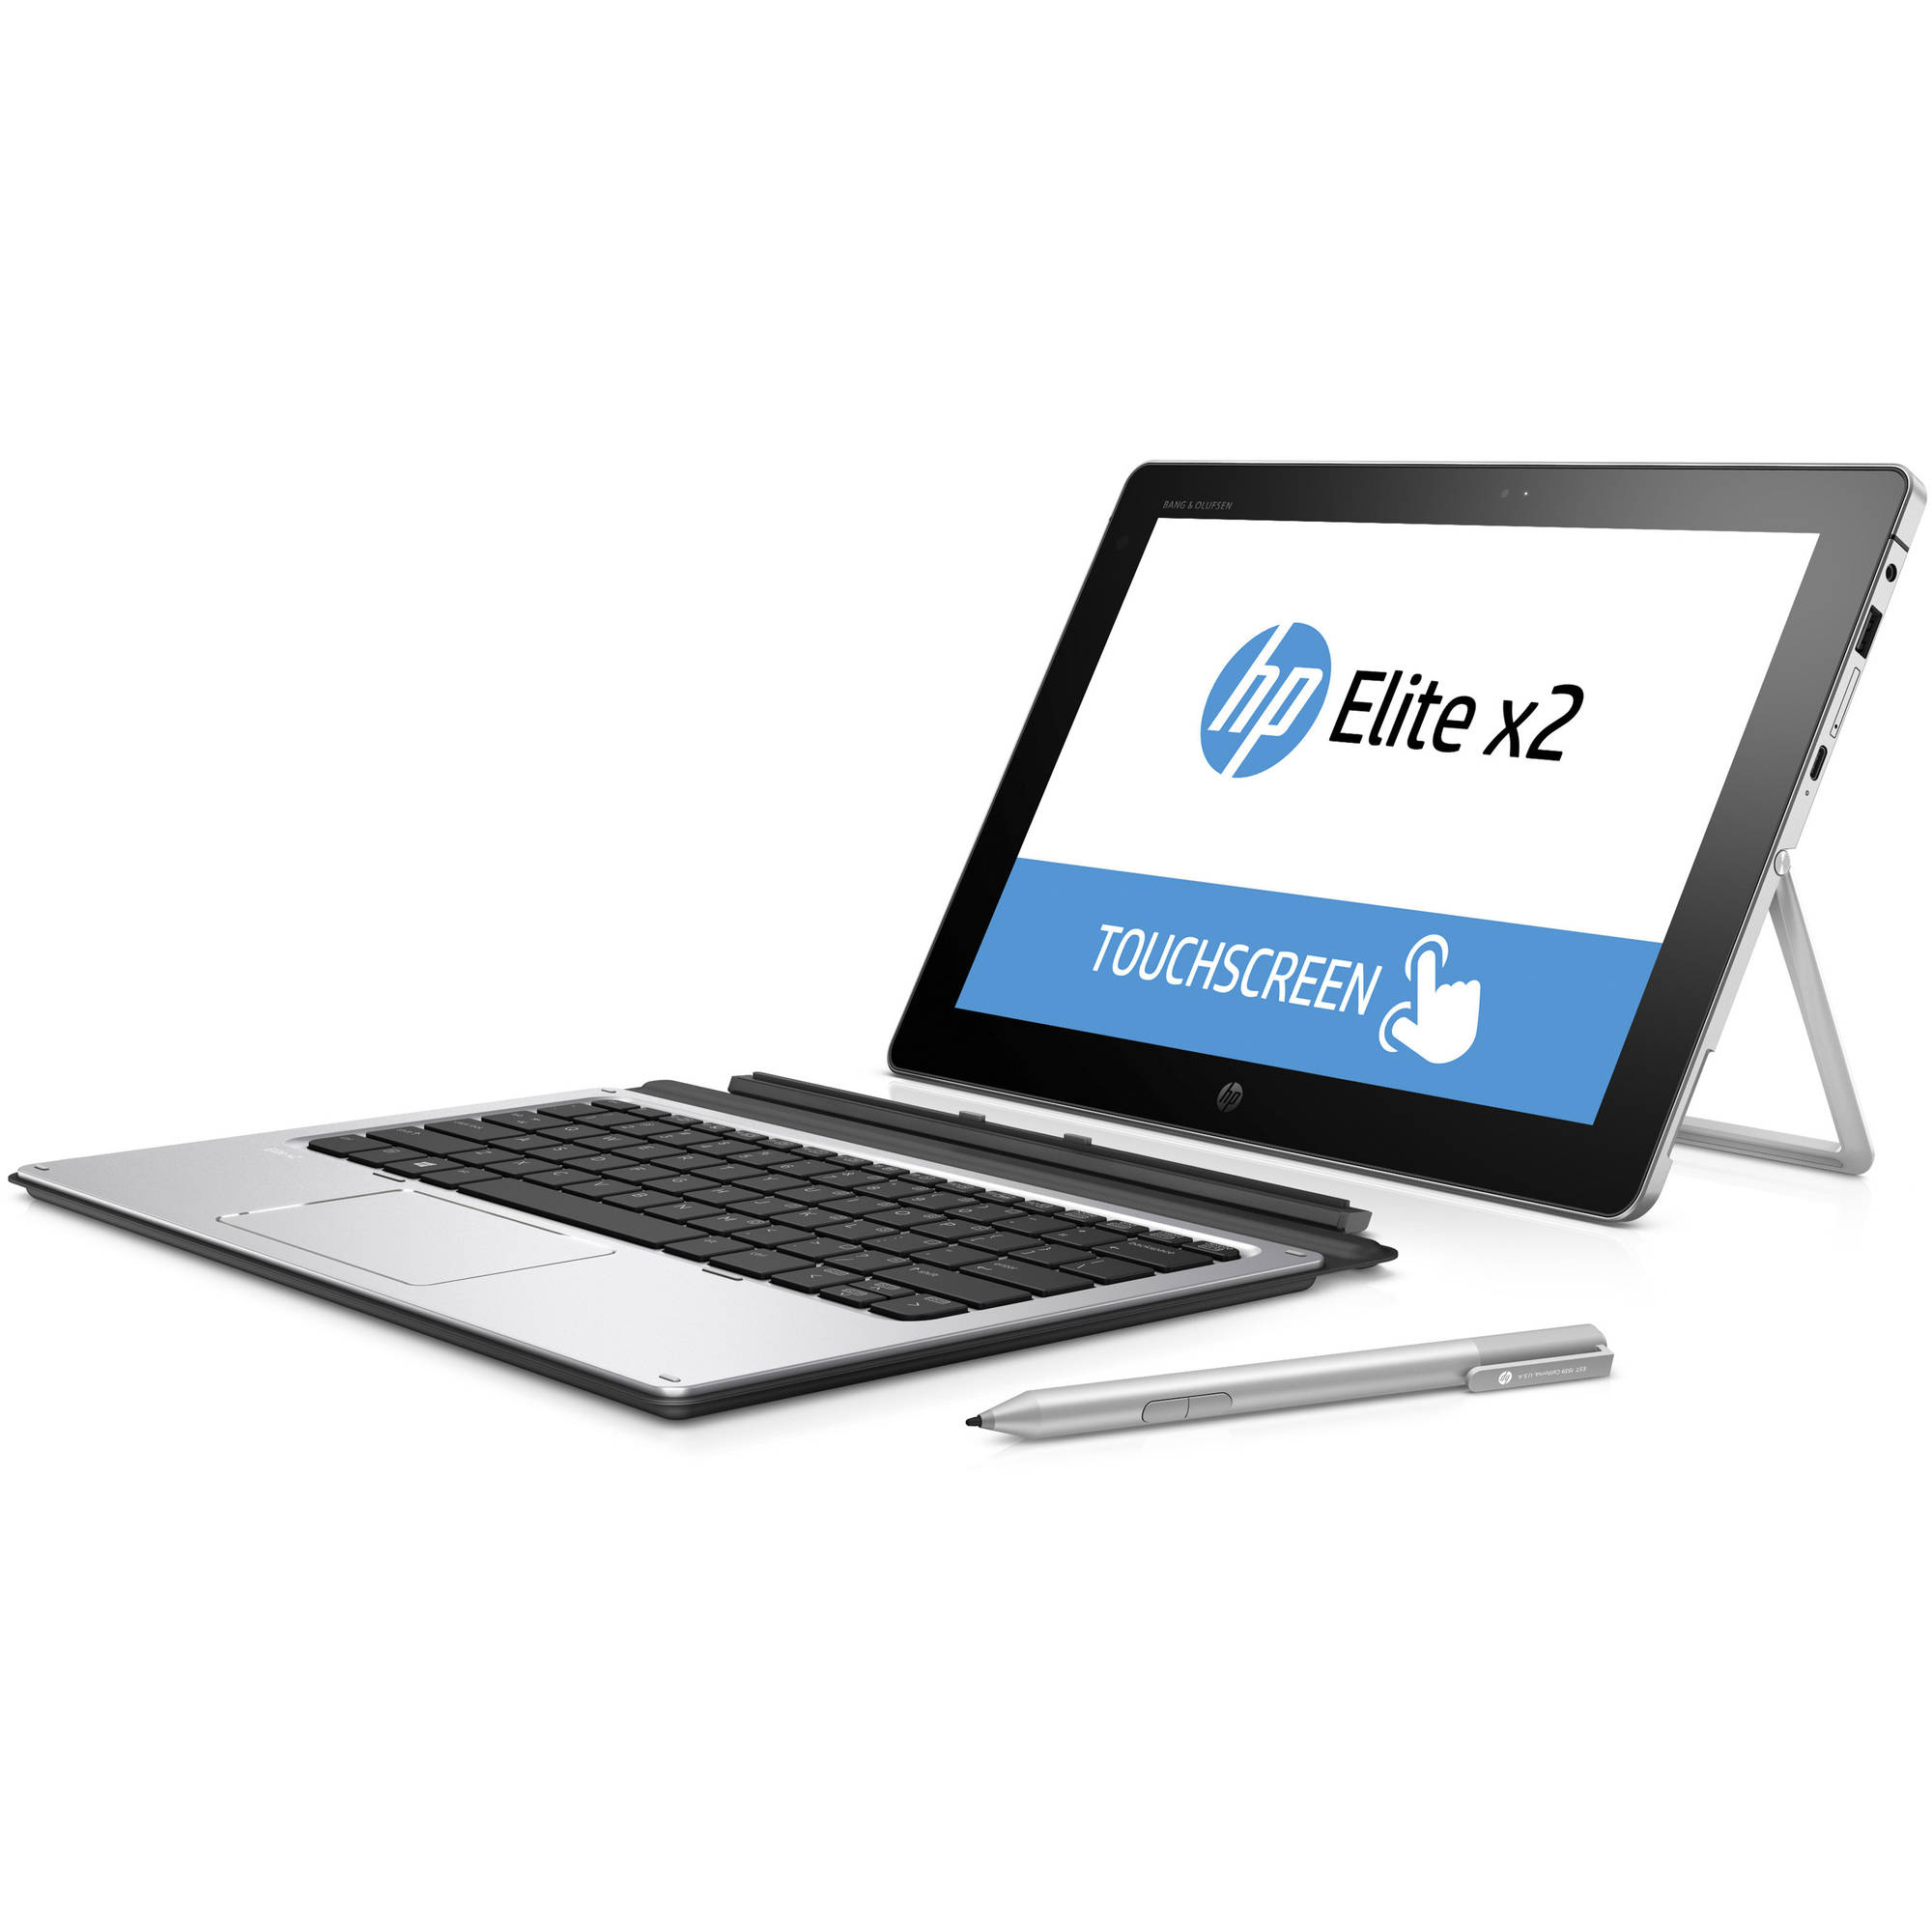 "HP Elite x2 1012 G1 with WiFi 12"" Touchscreen Tablet PC Featuring Windows 10 Pro Operating System, Silver"